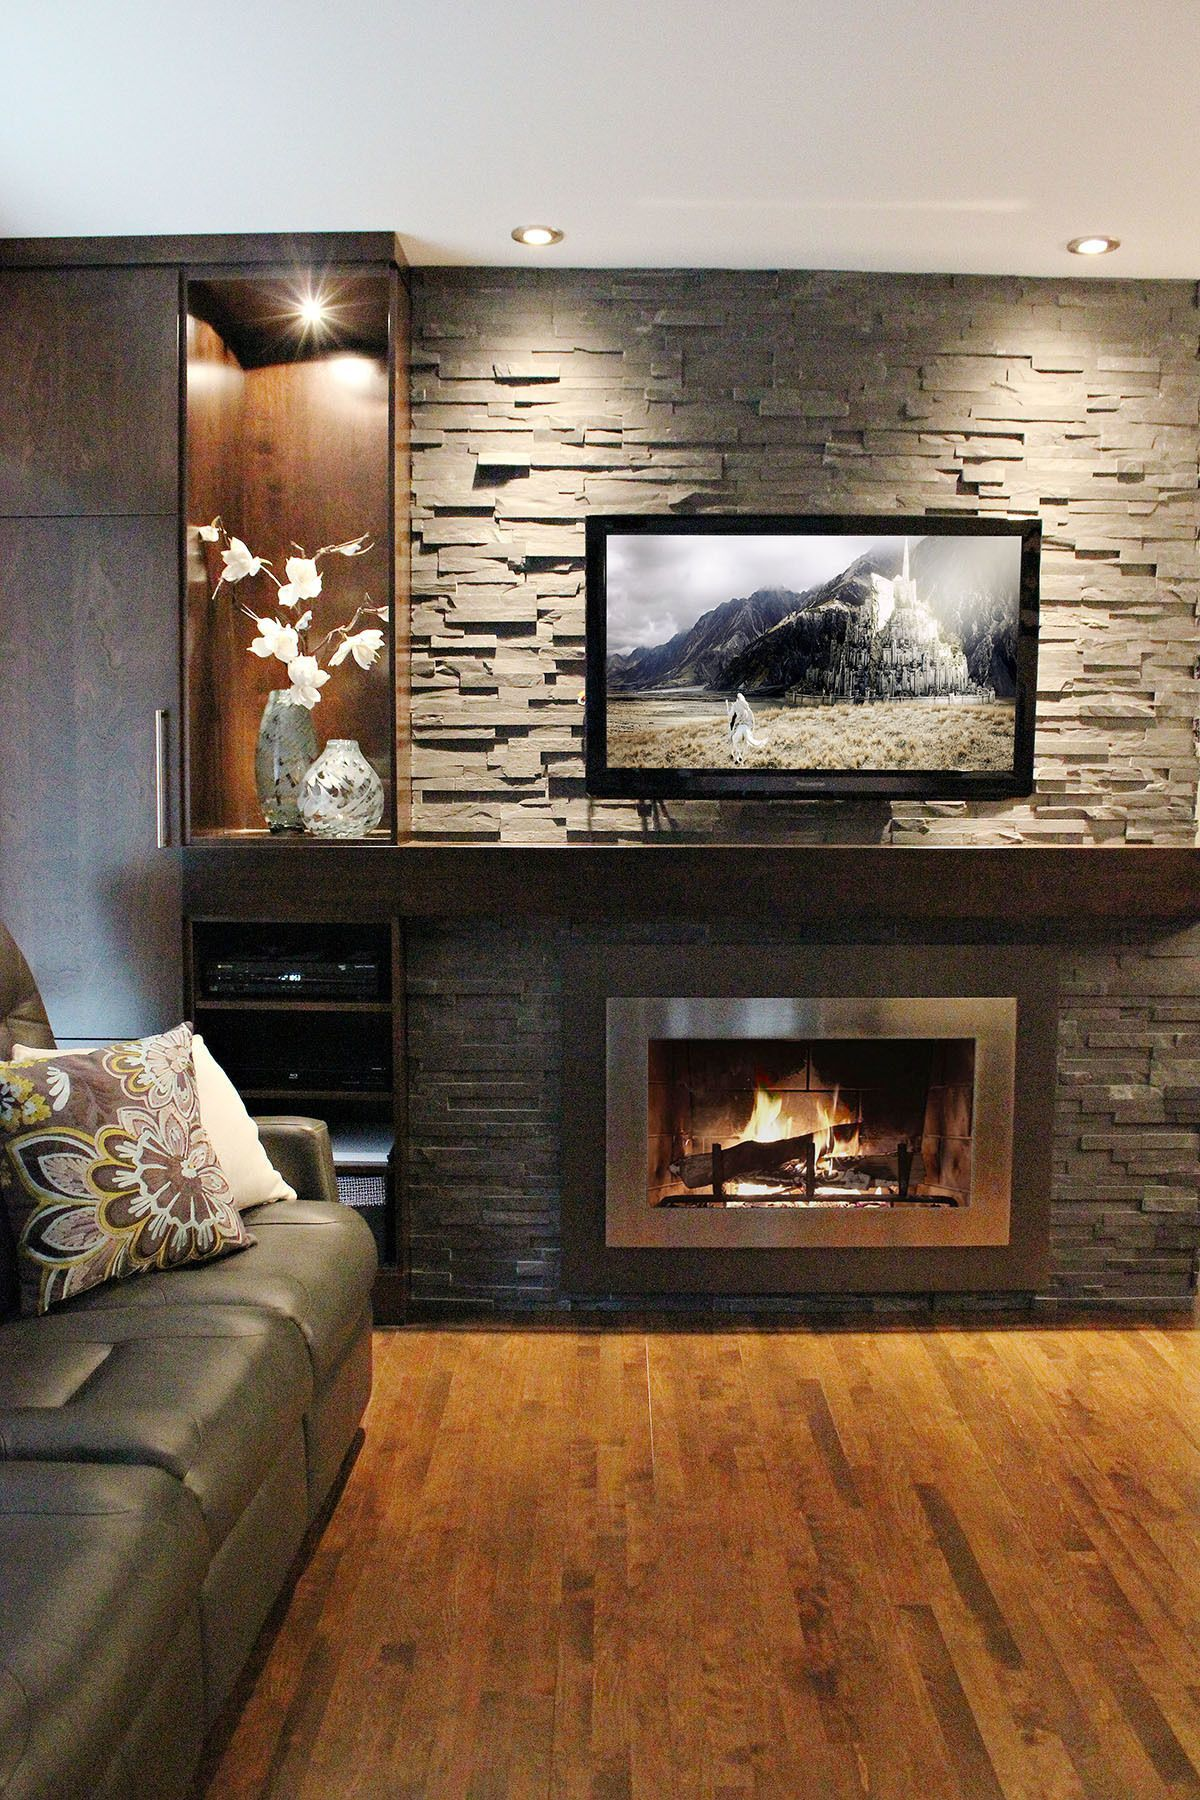 Fireplace Designer Inspirational 30 Incredible Fireplace Ideas for Your Best Home Design